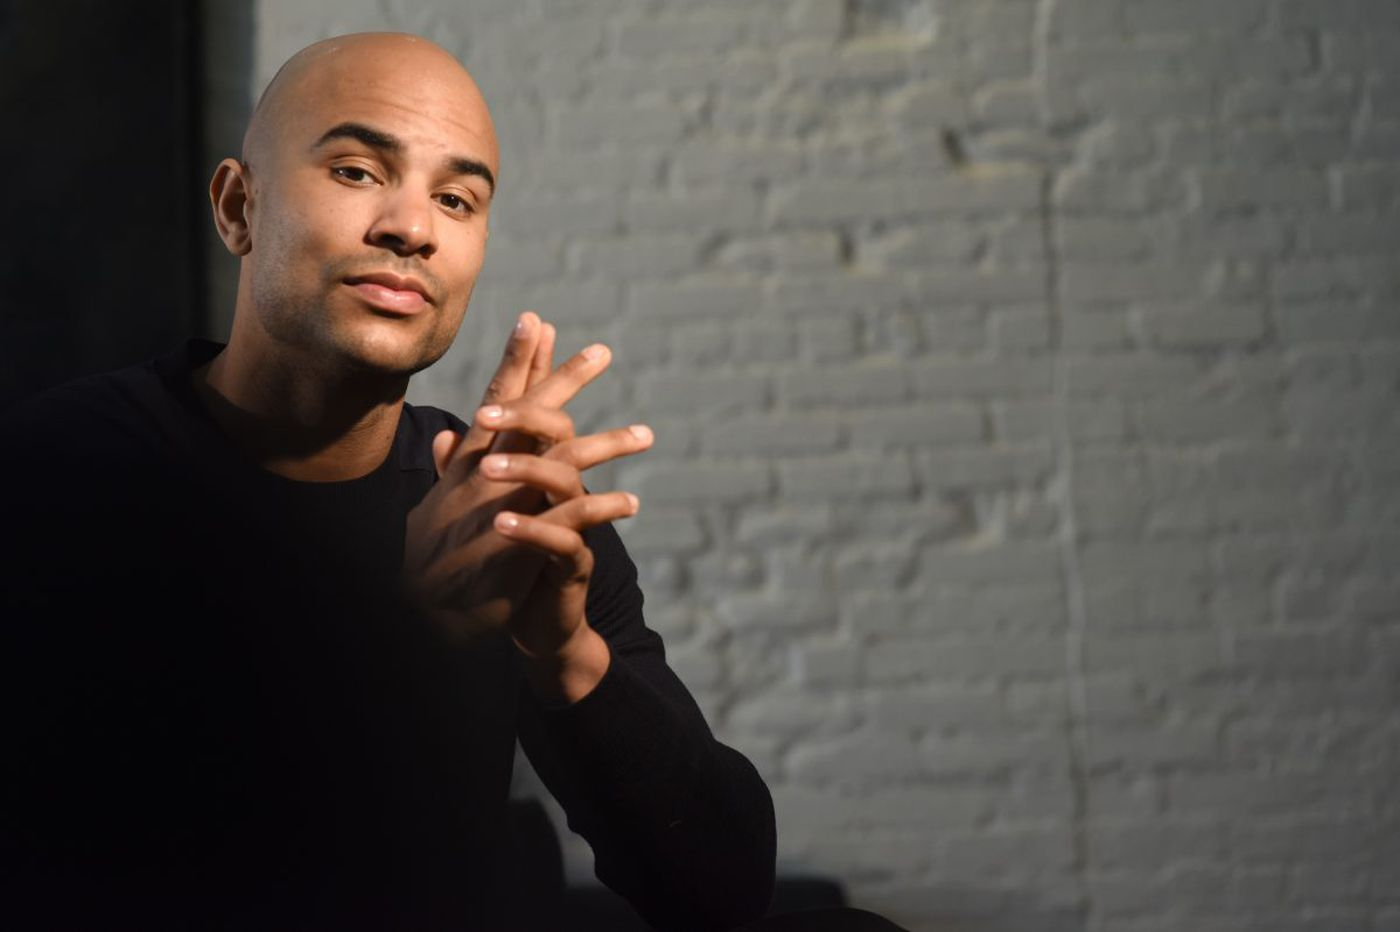 Sixers' Jerryd Bayless won't let basketball define who he is